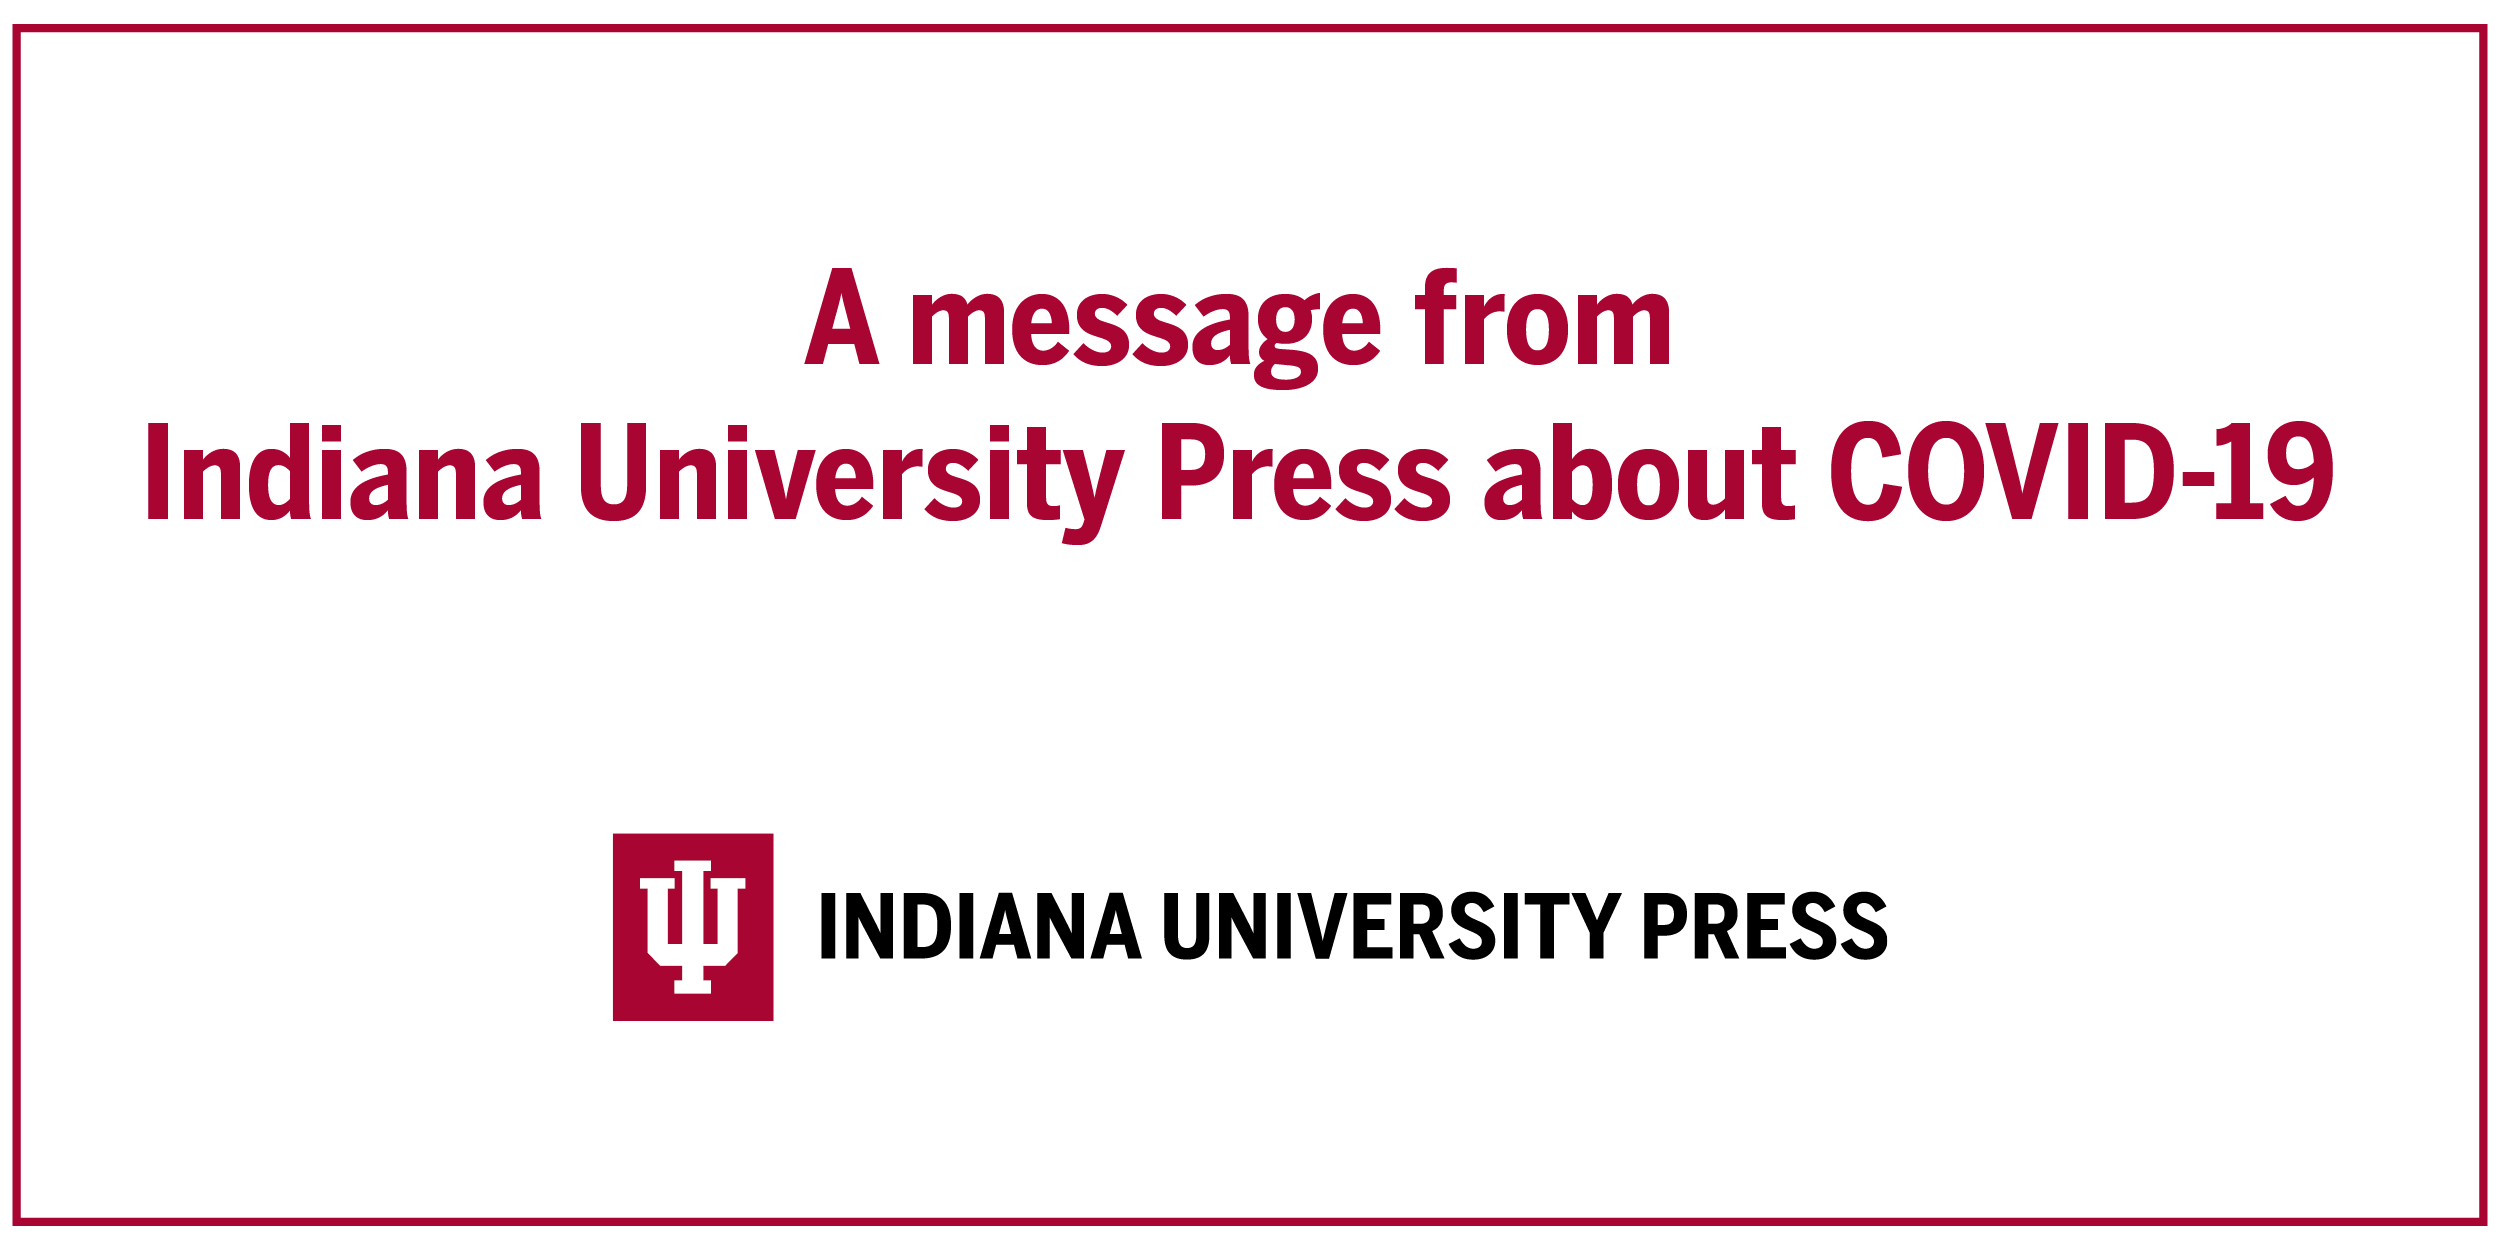 A message from Indiana University Press about COVID-19